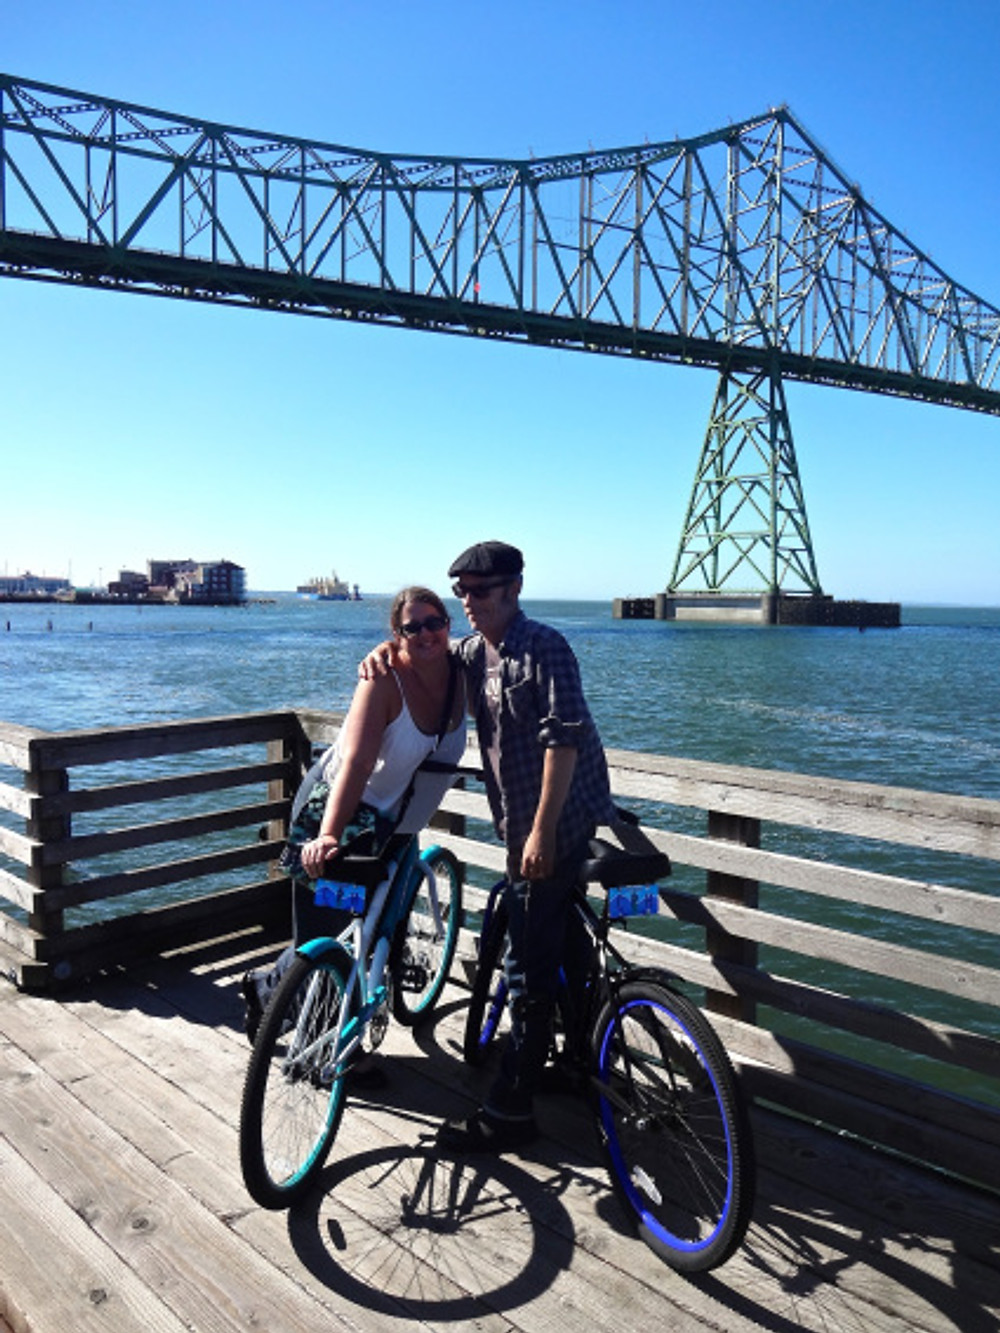 After going gaga over the room, we took advantage of the hotel's complimentary bicycles to take a ride along the water.